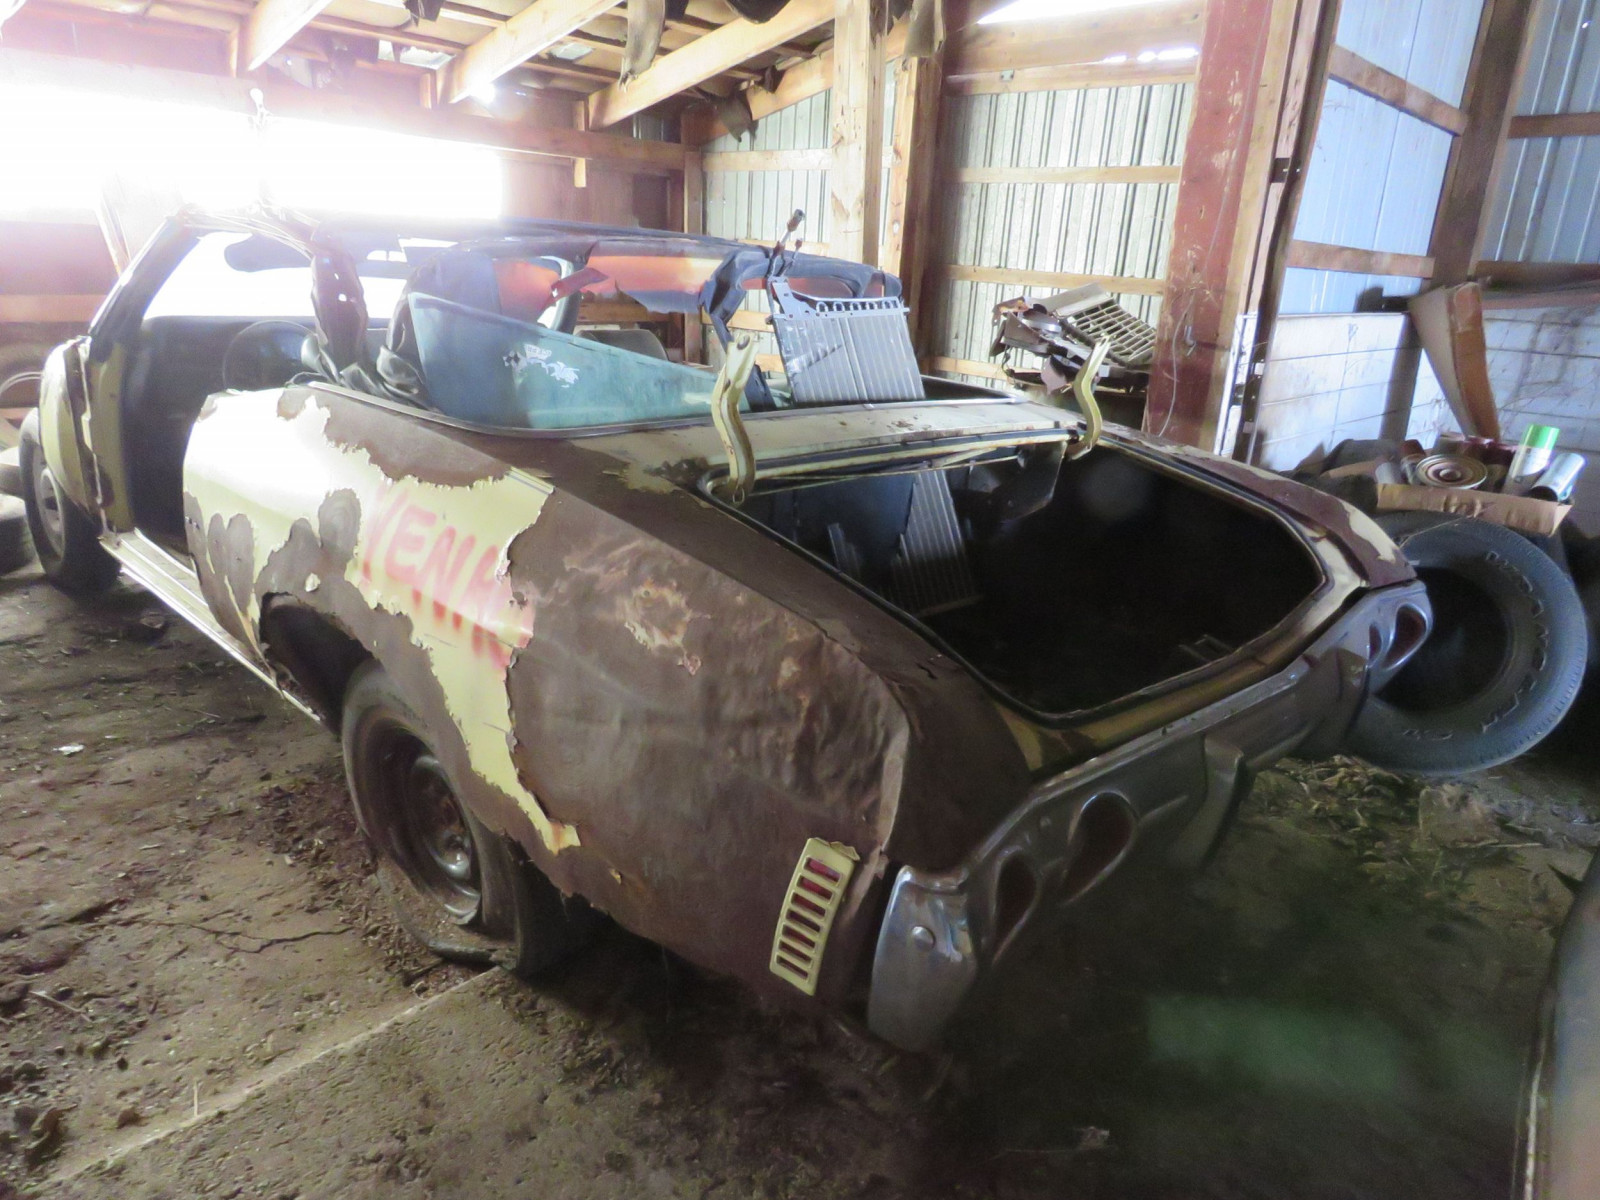 1972 Chevrolet Chevelle Convertible for Project or Parts - Image 5